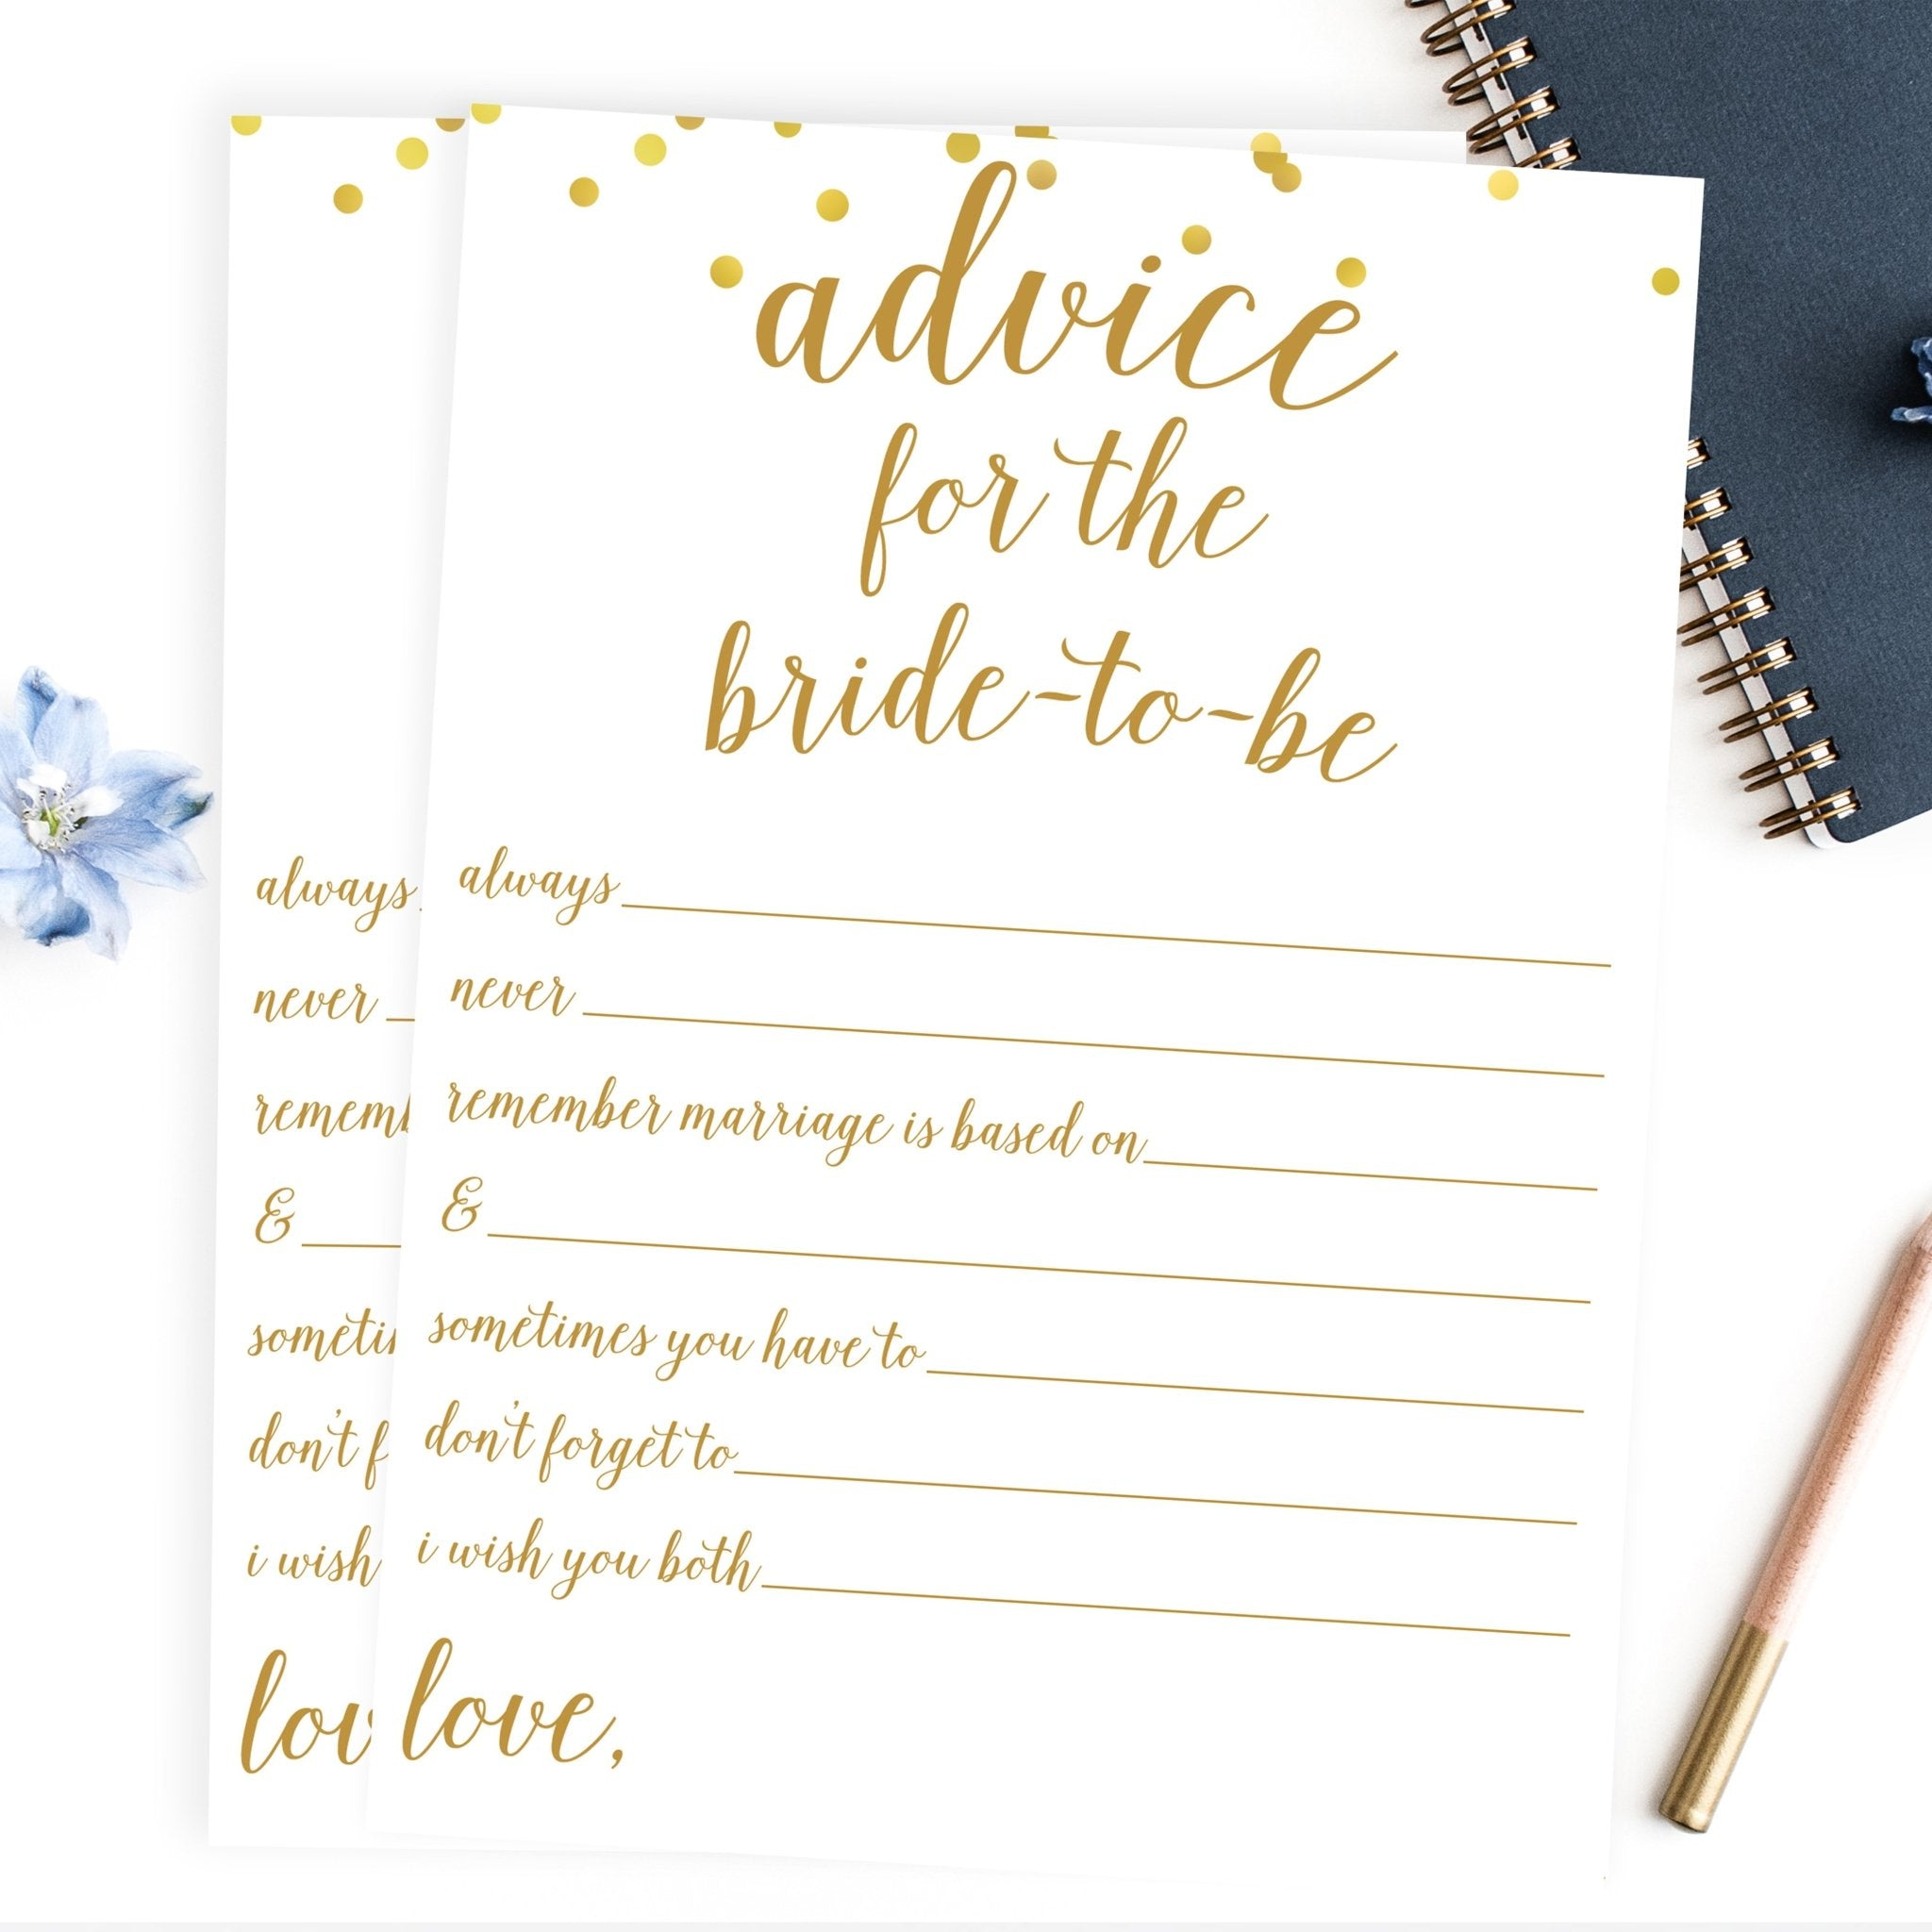 Advice For The Bride To Be Statements Gold Confetti Printable Pretty Collected